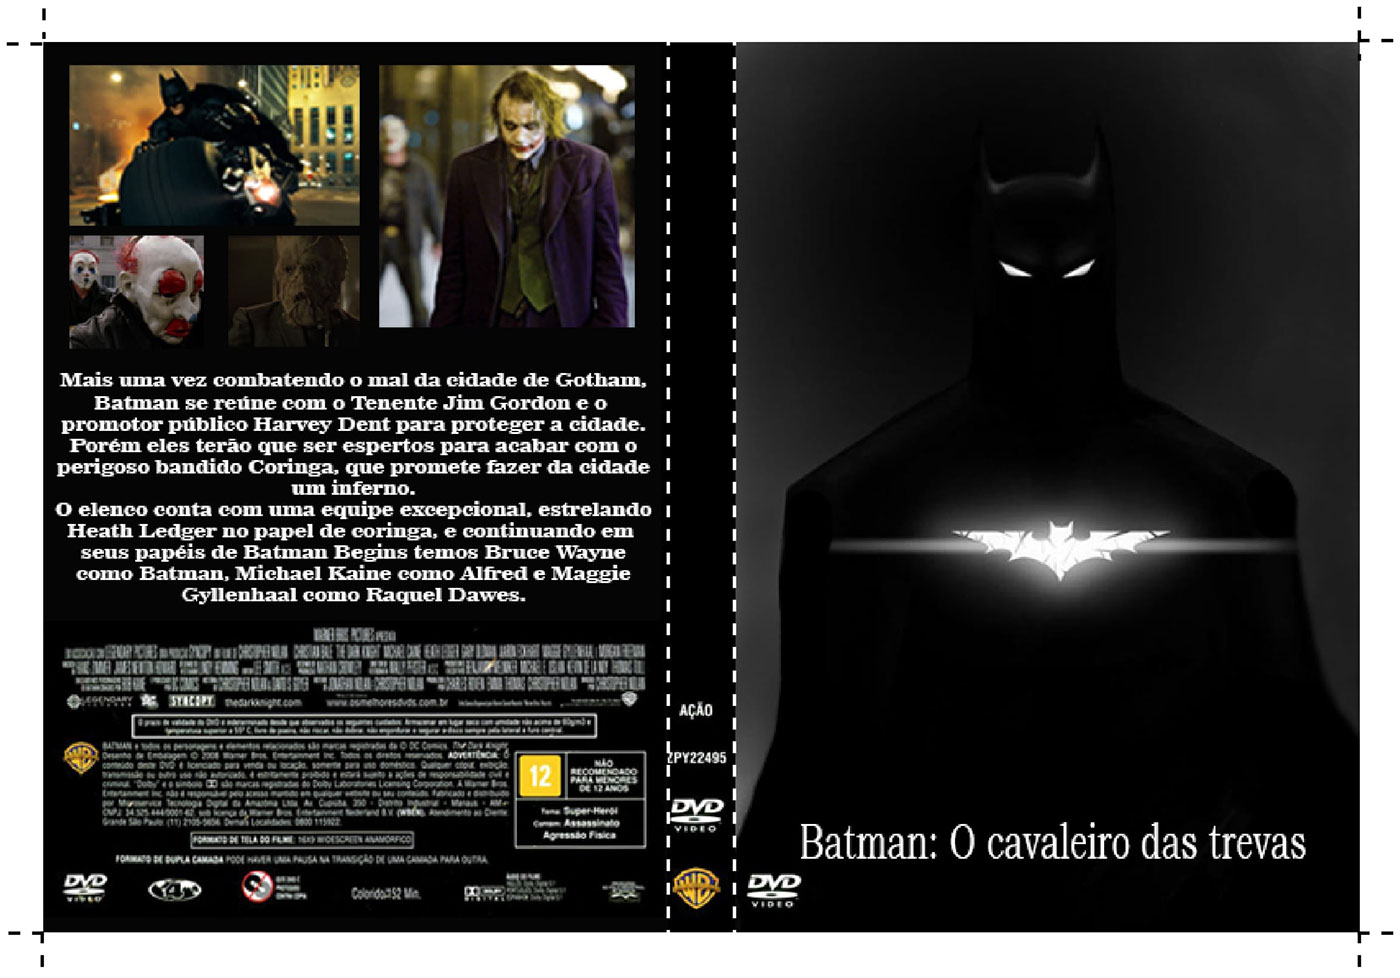 Releitura Da Capa Do Dvd Batman O Cavaleiro Das Trevas On Behance